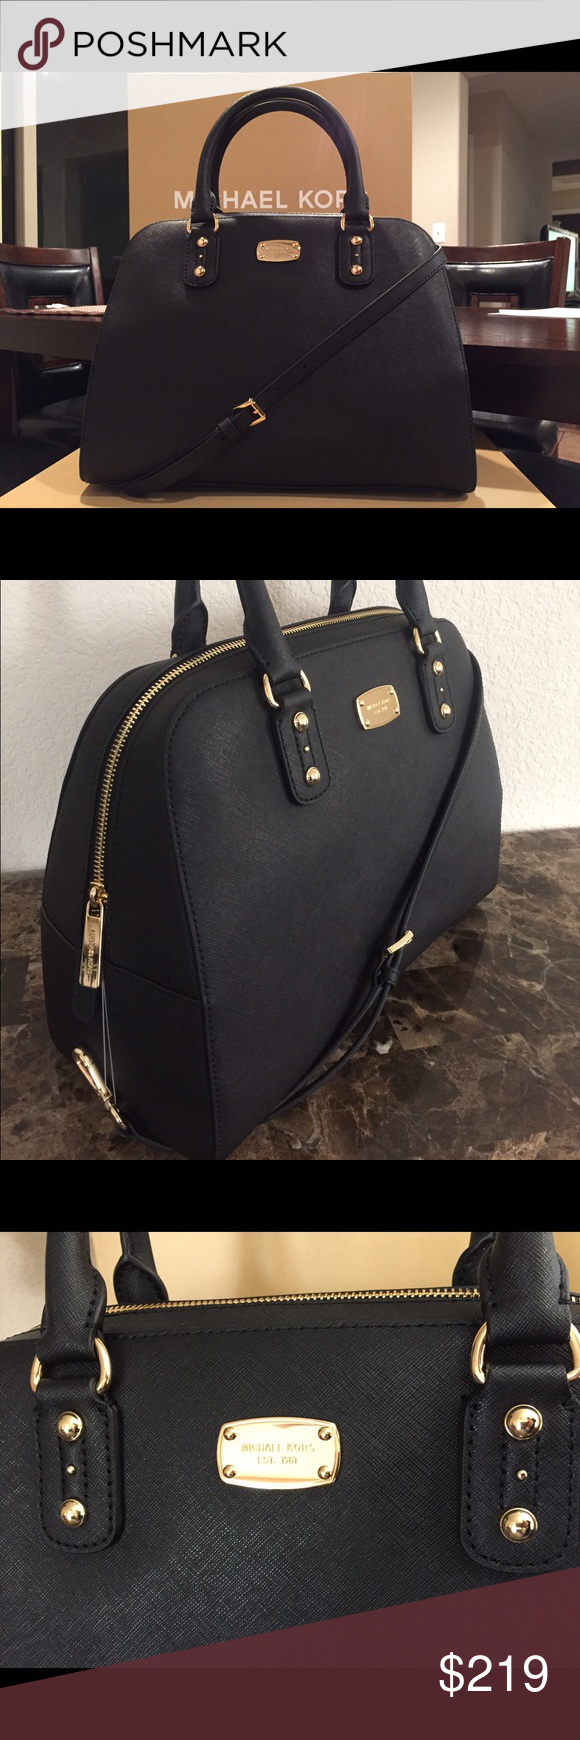 "ELEGANT Michael Kors Black Satchel You will like be this Michael Kors Satchel. Perfect for day, evening, office and travel. Gorgeous handbag, matches with every style. 13.4""L x 10""H x 6"" W KORS Michael Kors Bags Satchels"